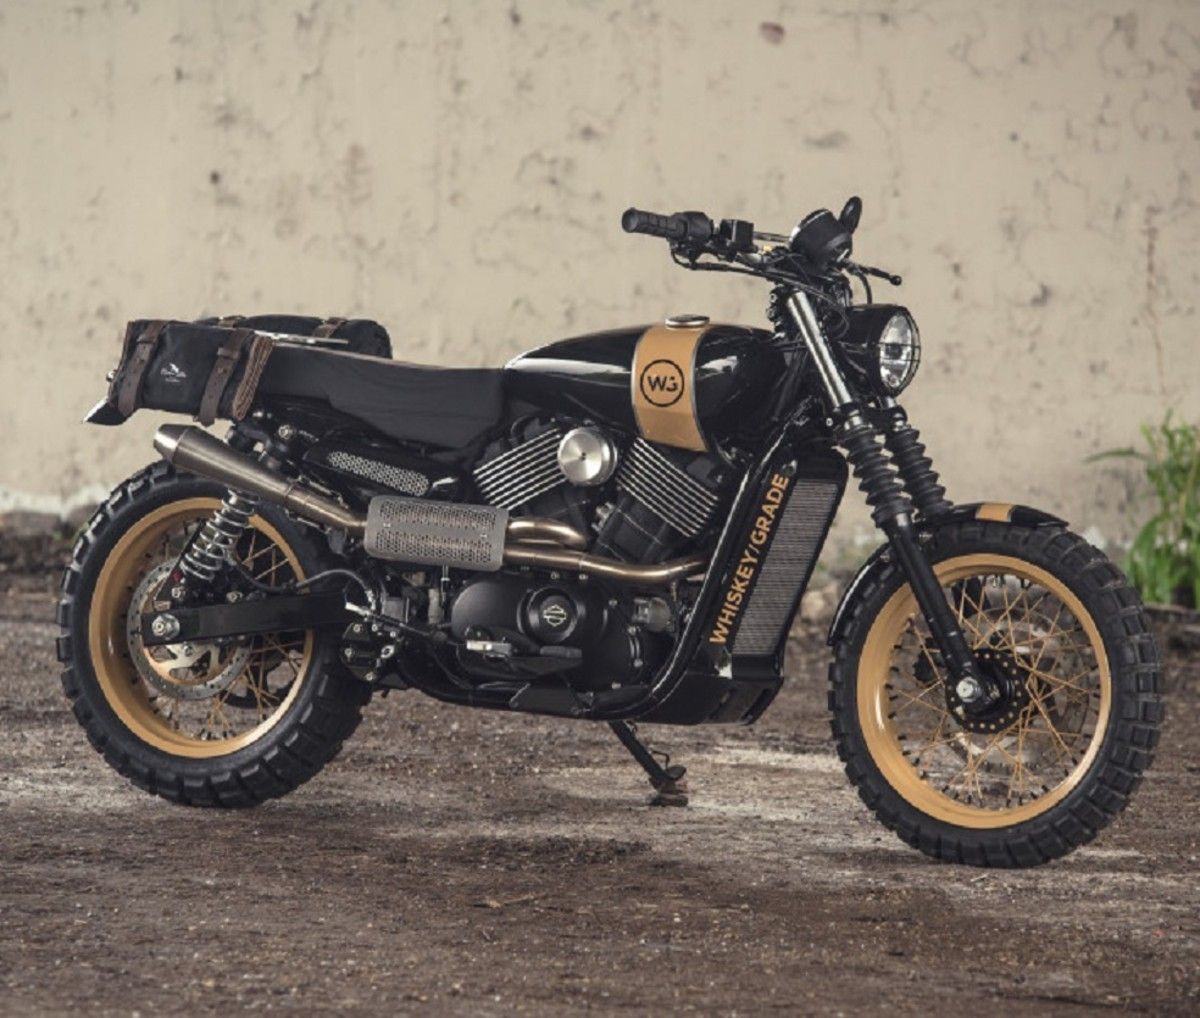 analog-motorcycles-pours-a-whiskey-grade-dirty750-harley-davidson-motorcycle-2